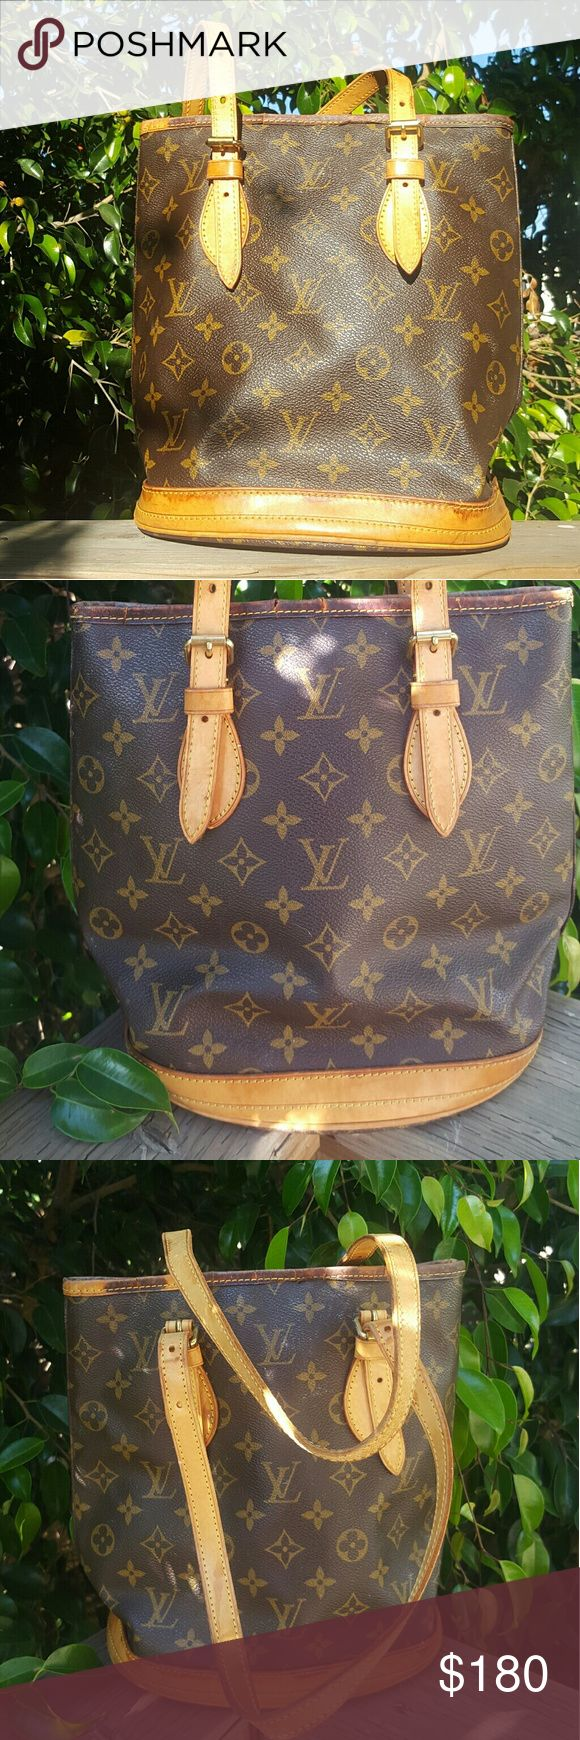 Authentic Louis Vuitton bucket pm bag Authentic Louis Vuitton bag canvases in good condition but some cracking on the edges an inside is all peeled off Louis Vuitton Bags